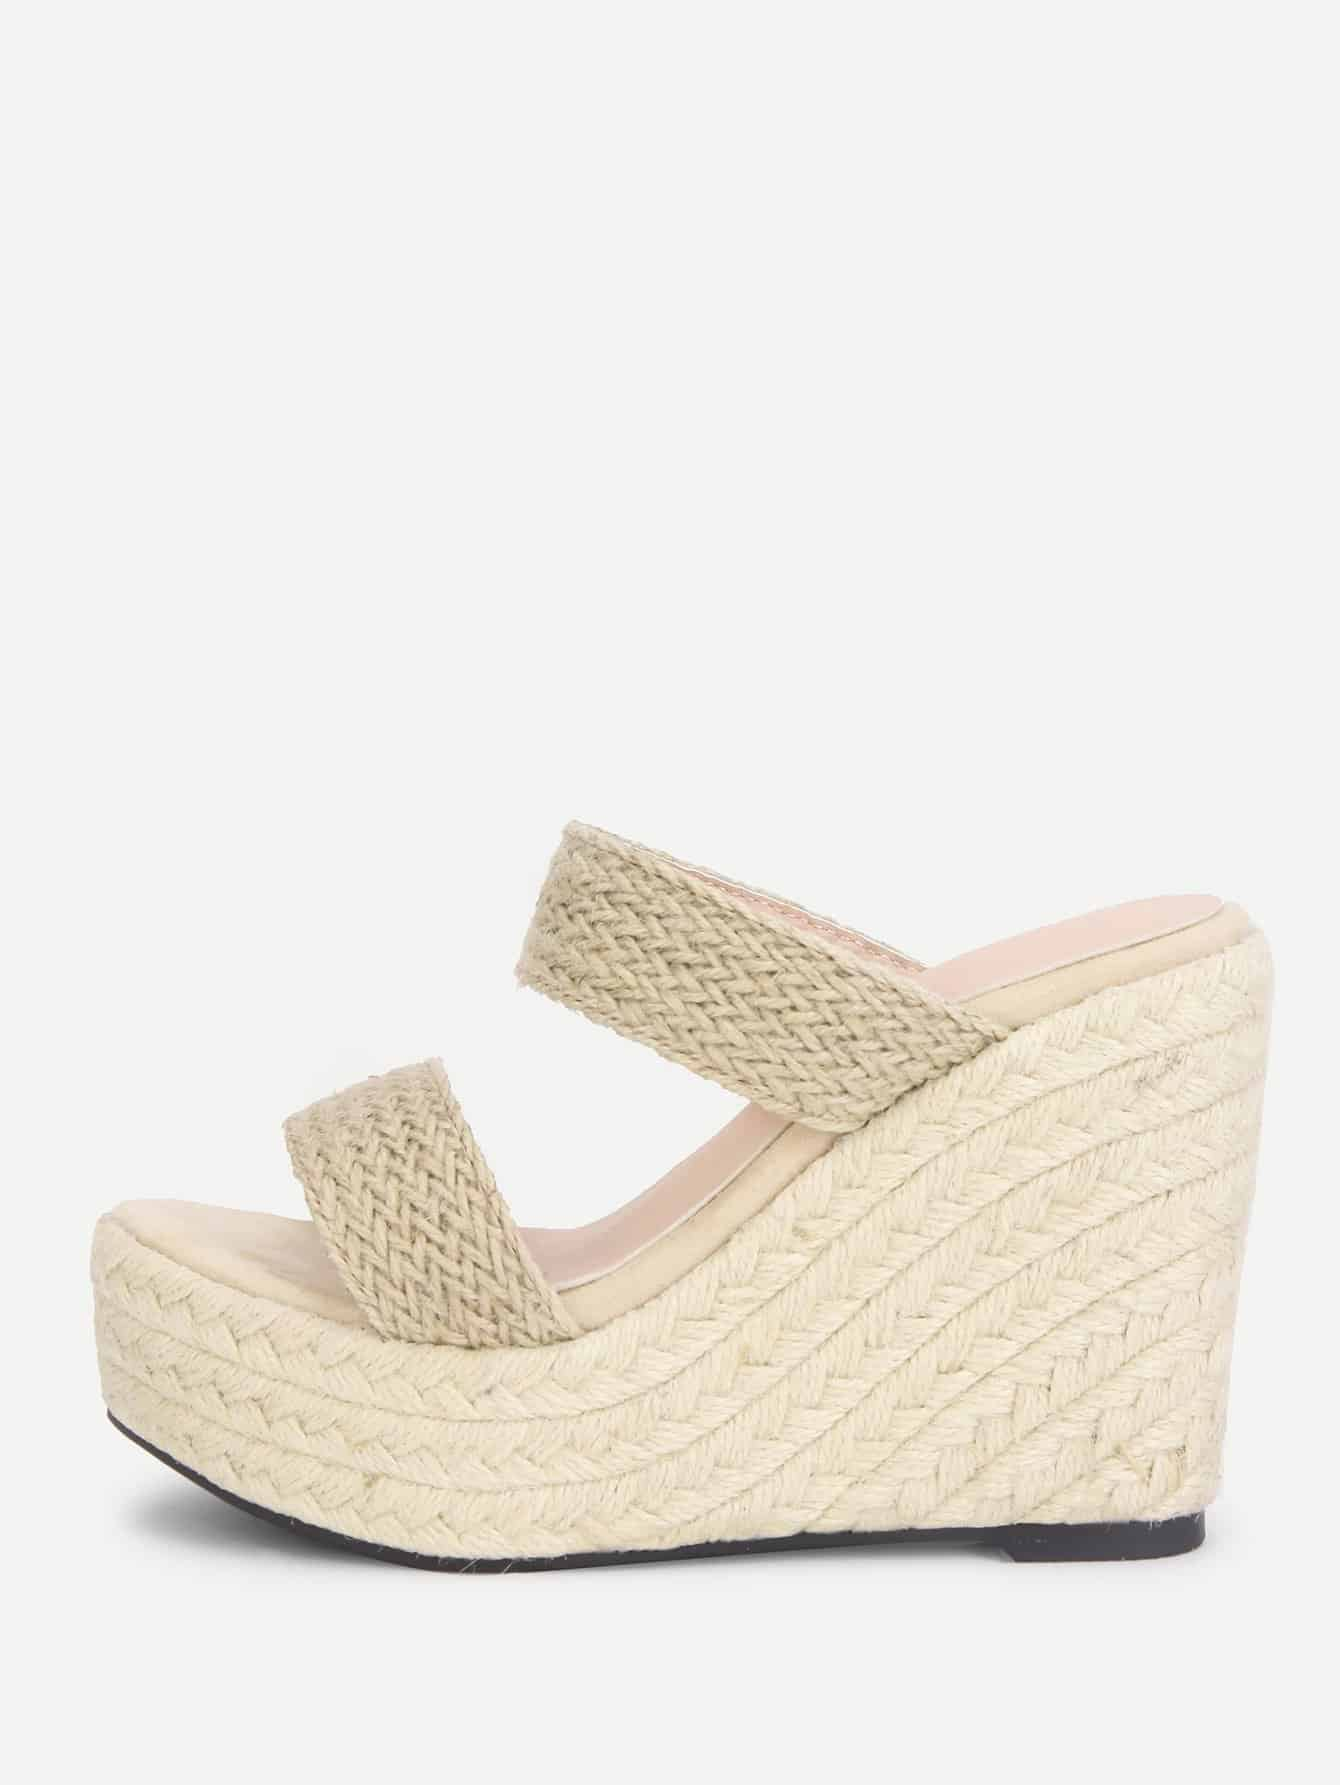 Woven Design Wedge Sandals woven design straw flat sandals